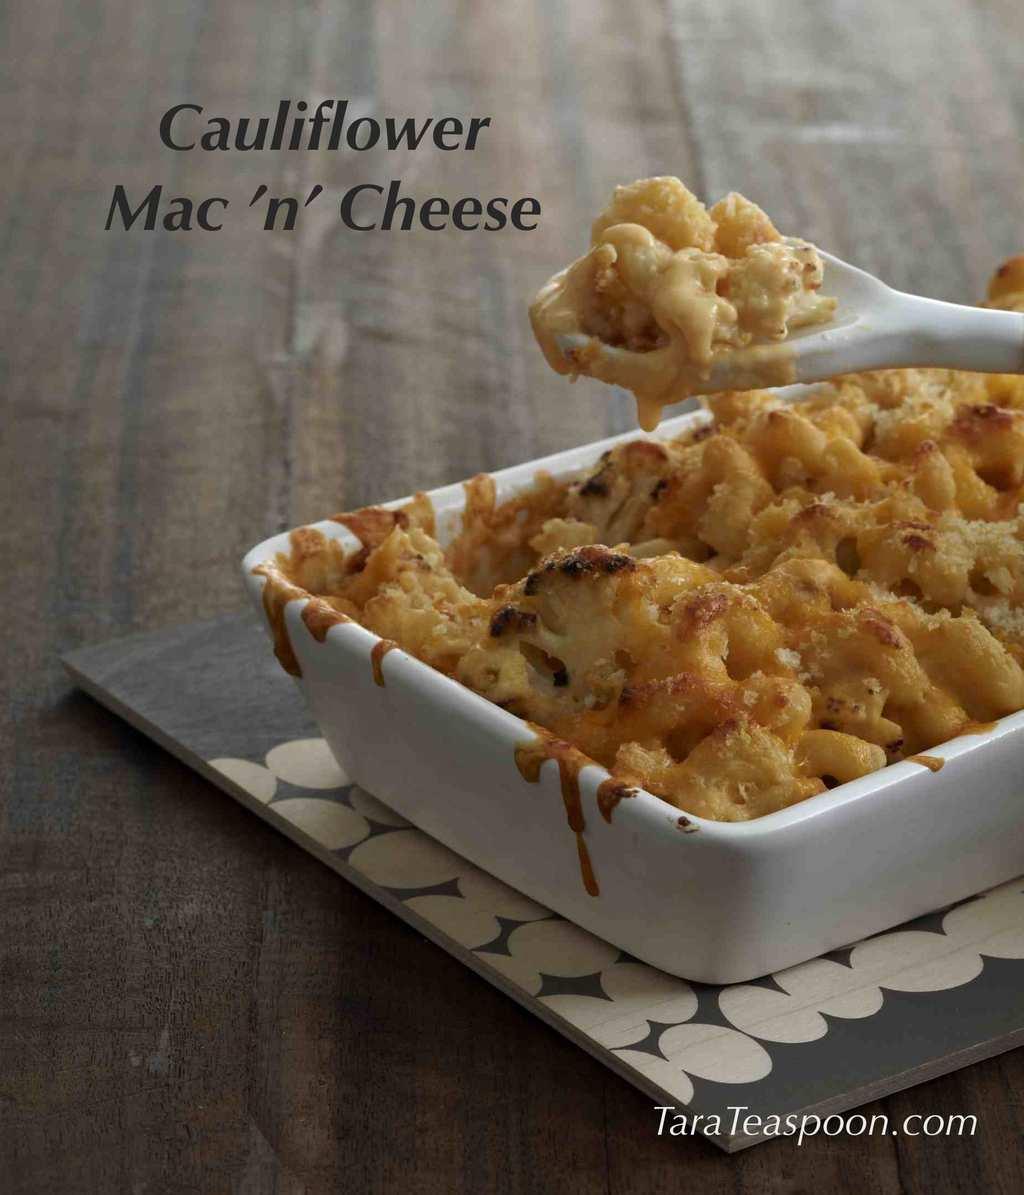 Cauliflower Mac 'n' Cheese